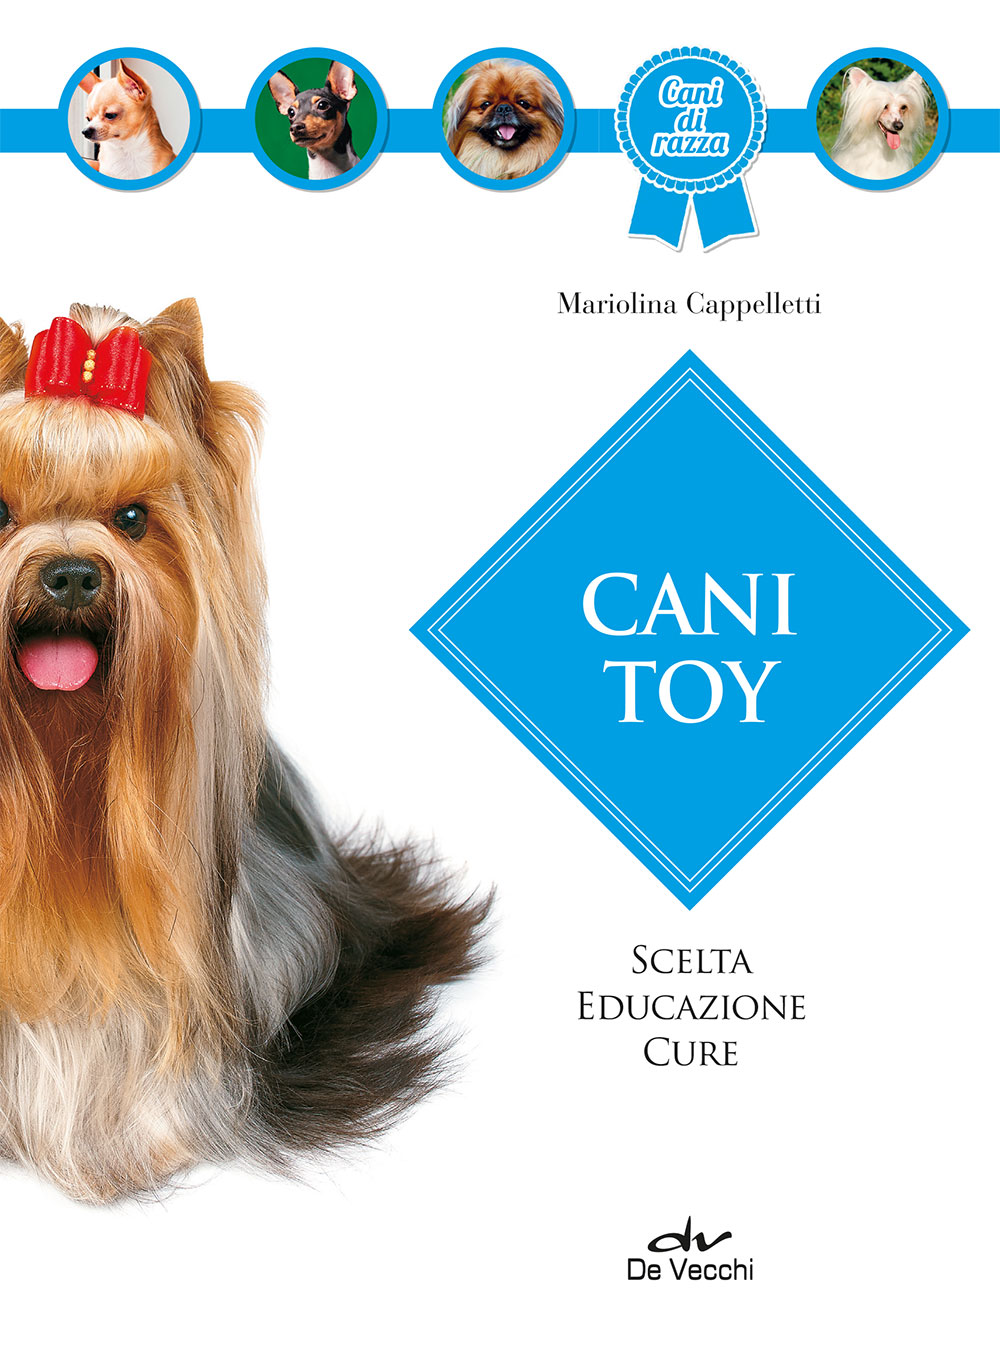 Cani toy